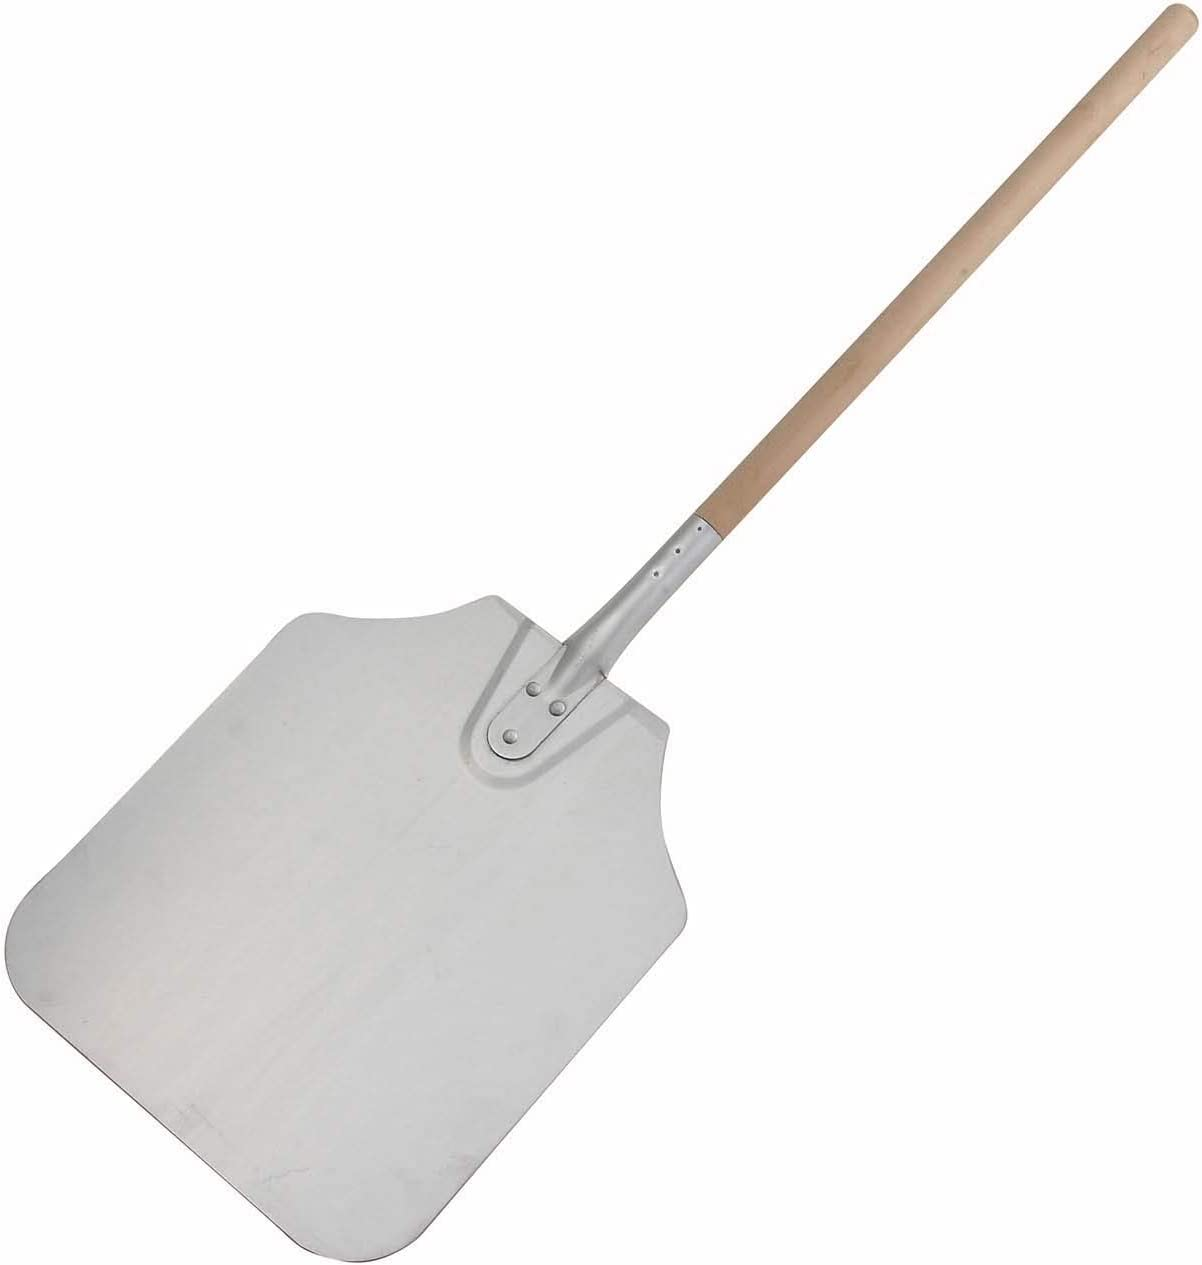 """Winco App-36 Pizza peel Over All Size 36""""Long, 12""""X14"""" Blade Size With Wooden Handle"""